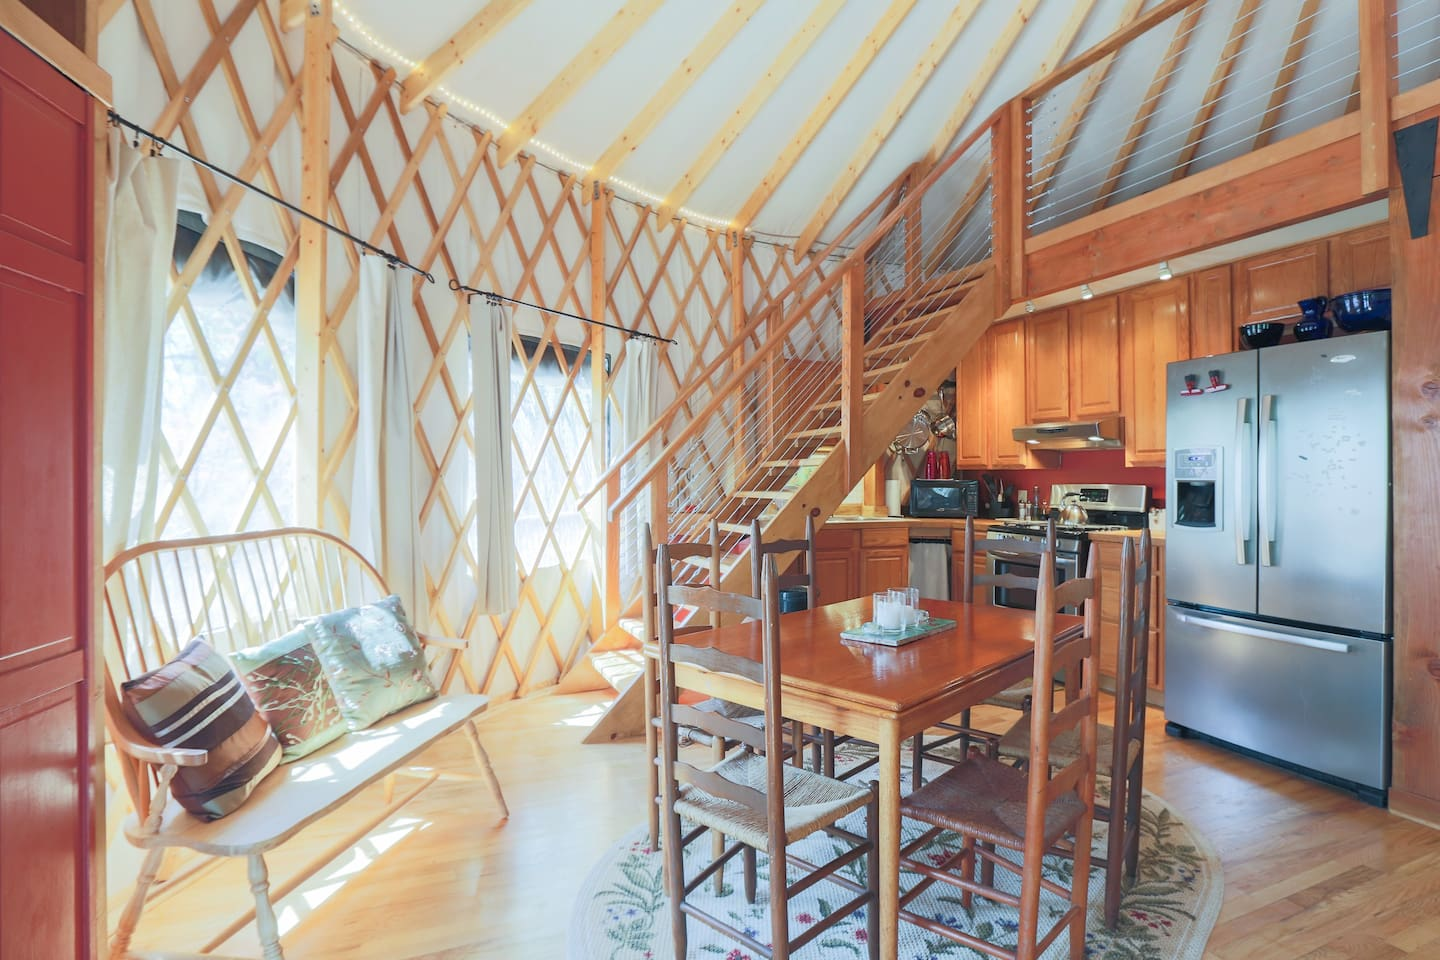 The stairs lead to a loft containing a queen size bed, two twin beds, musical instruments and the sky dome.